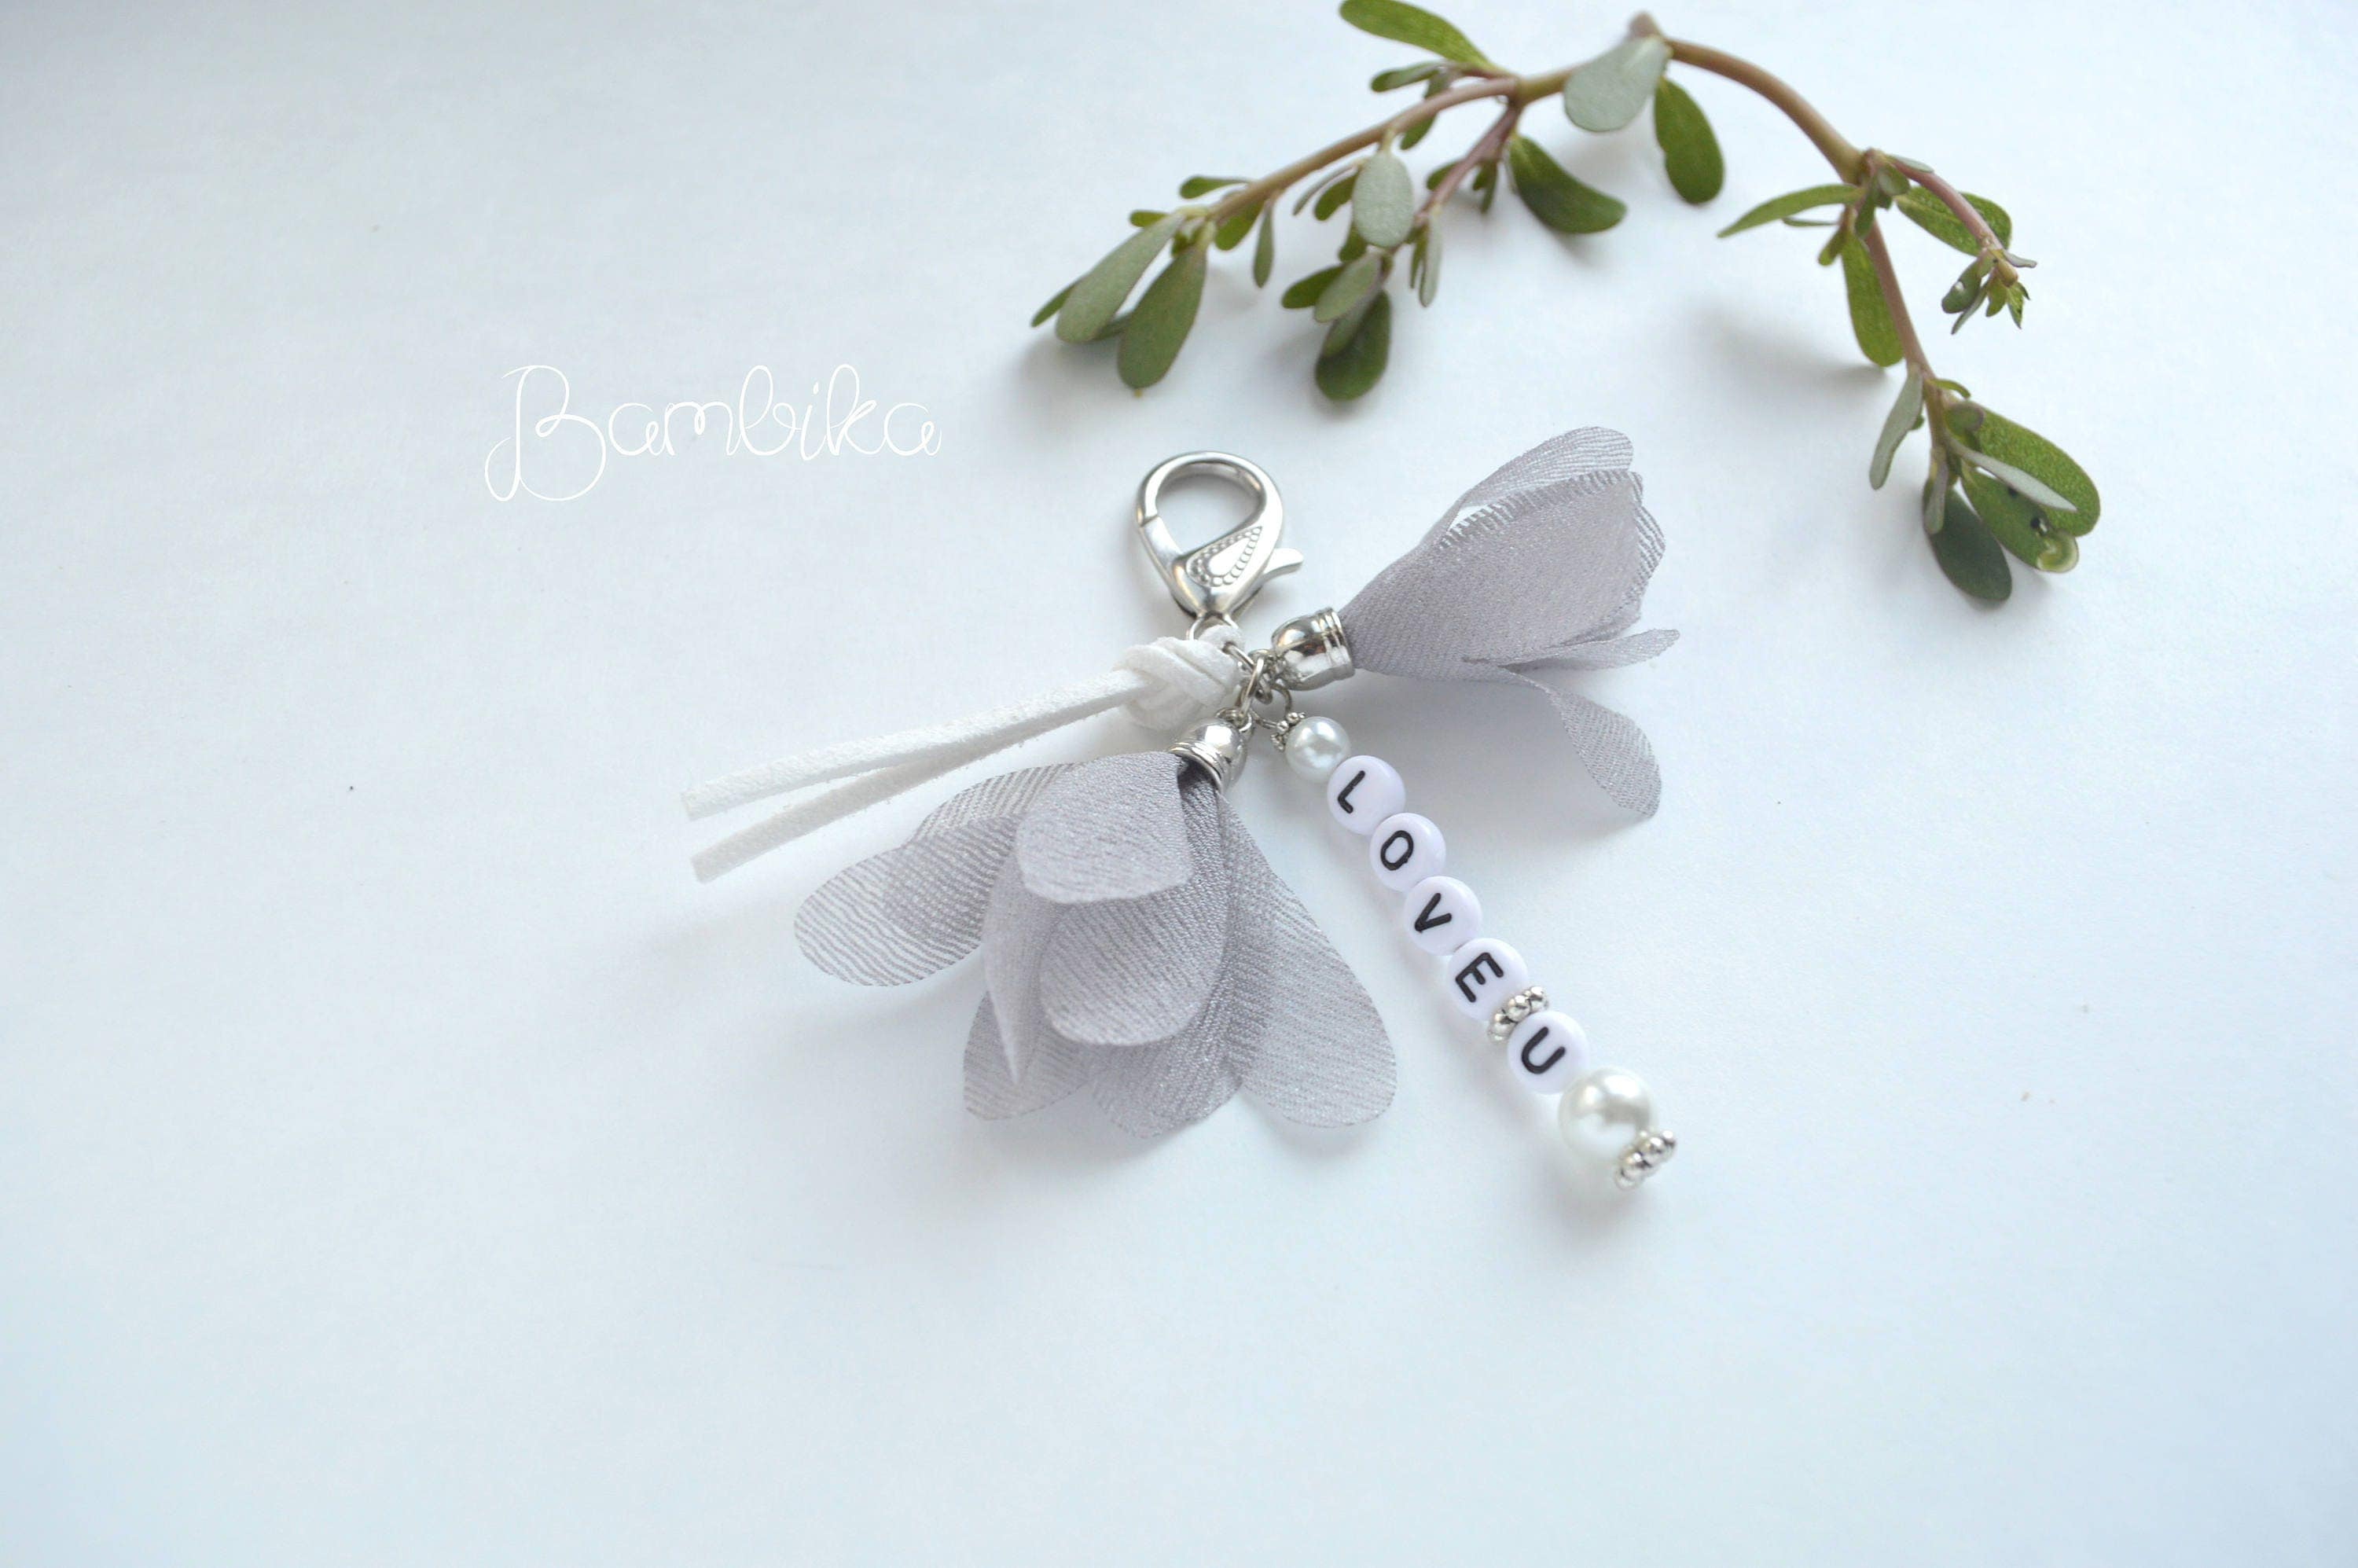 Personalized Keychain With Letters Love Key Chain Gift Best Friend